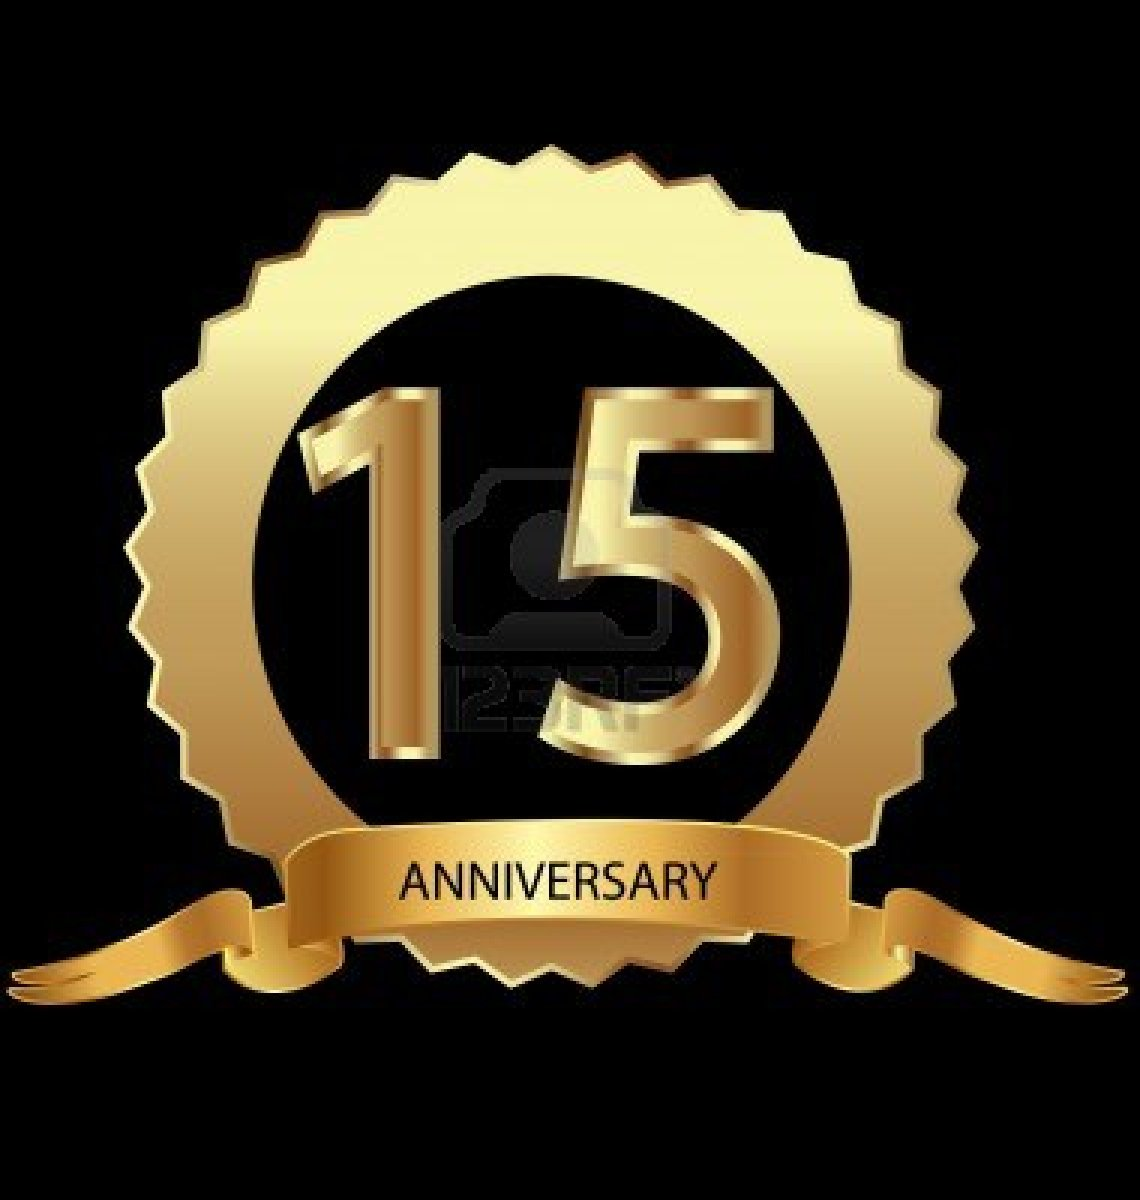 Life's A Twitch! Celebrating 15 years.